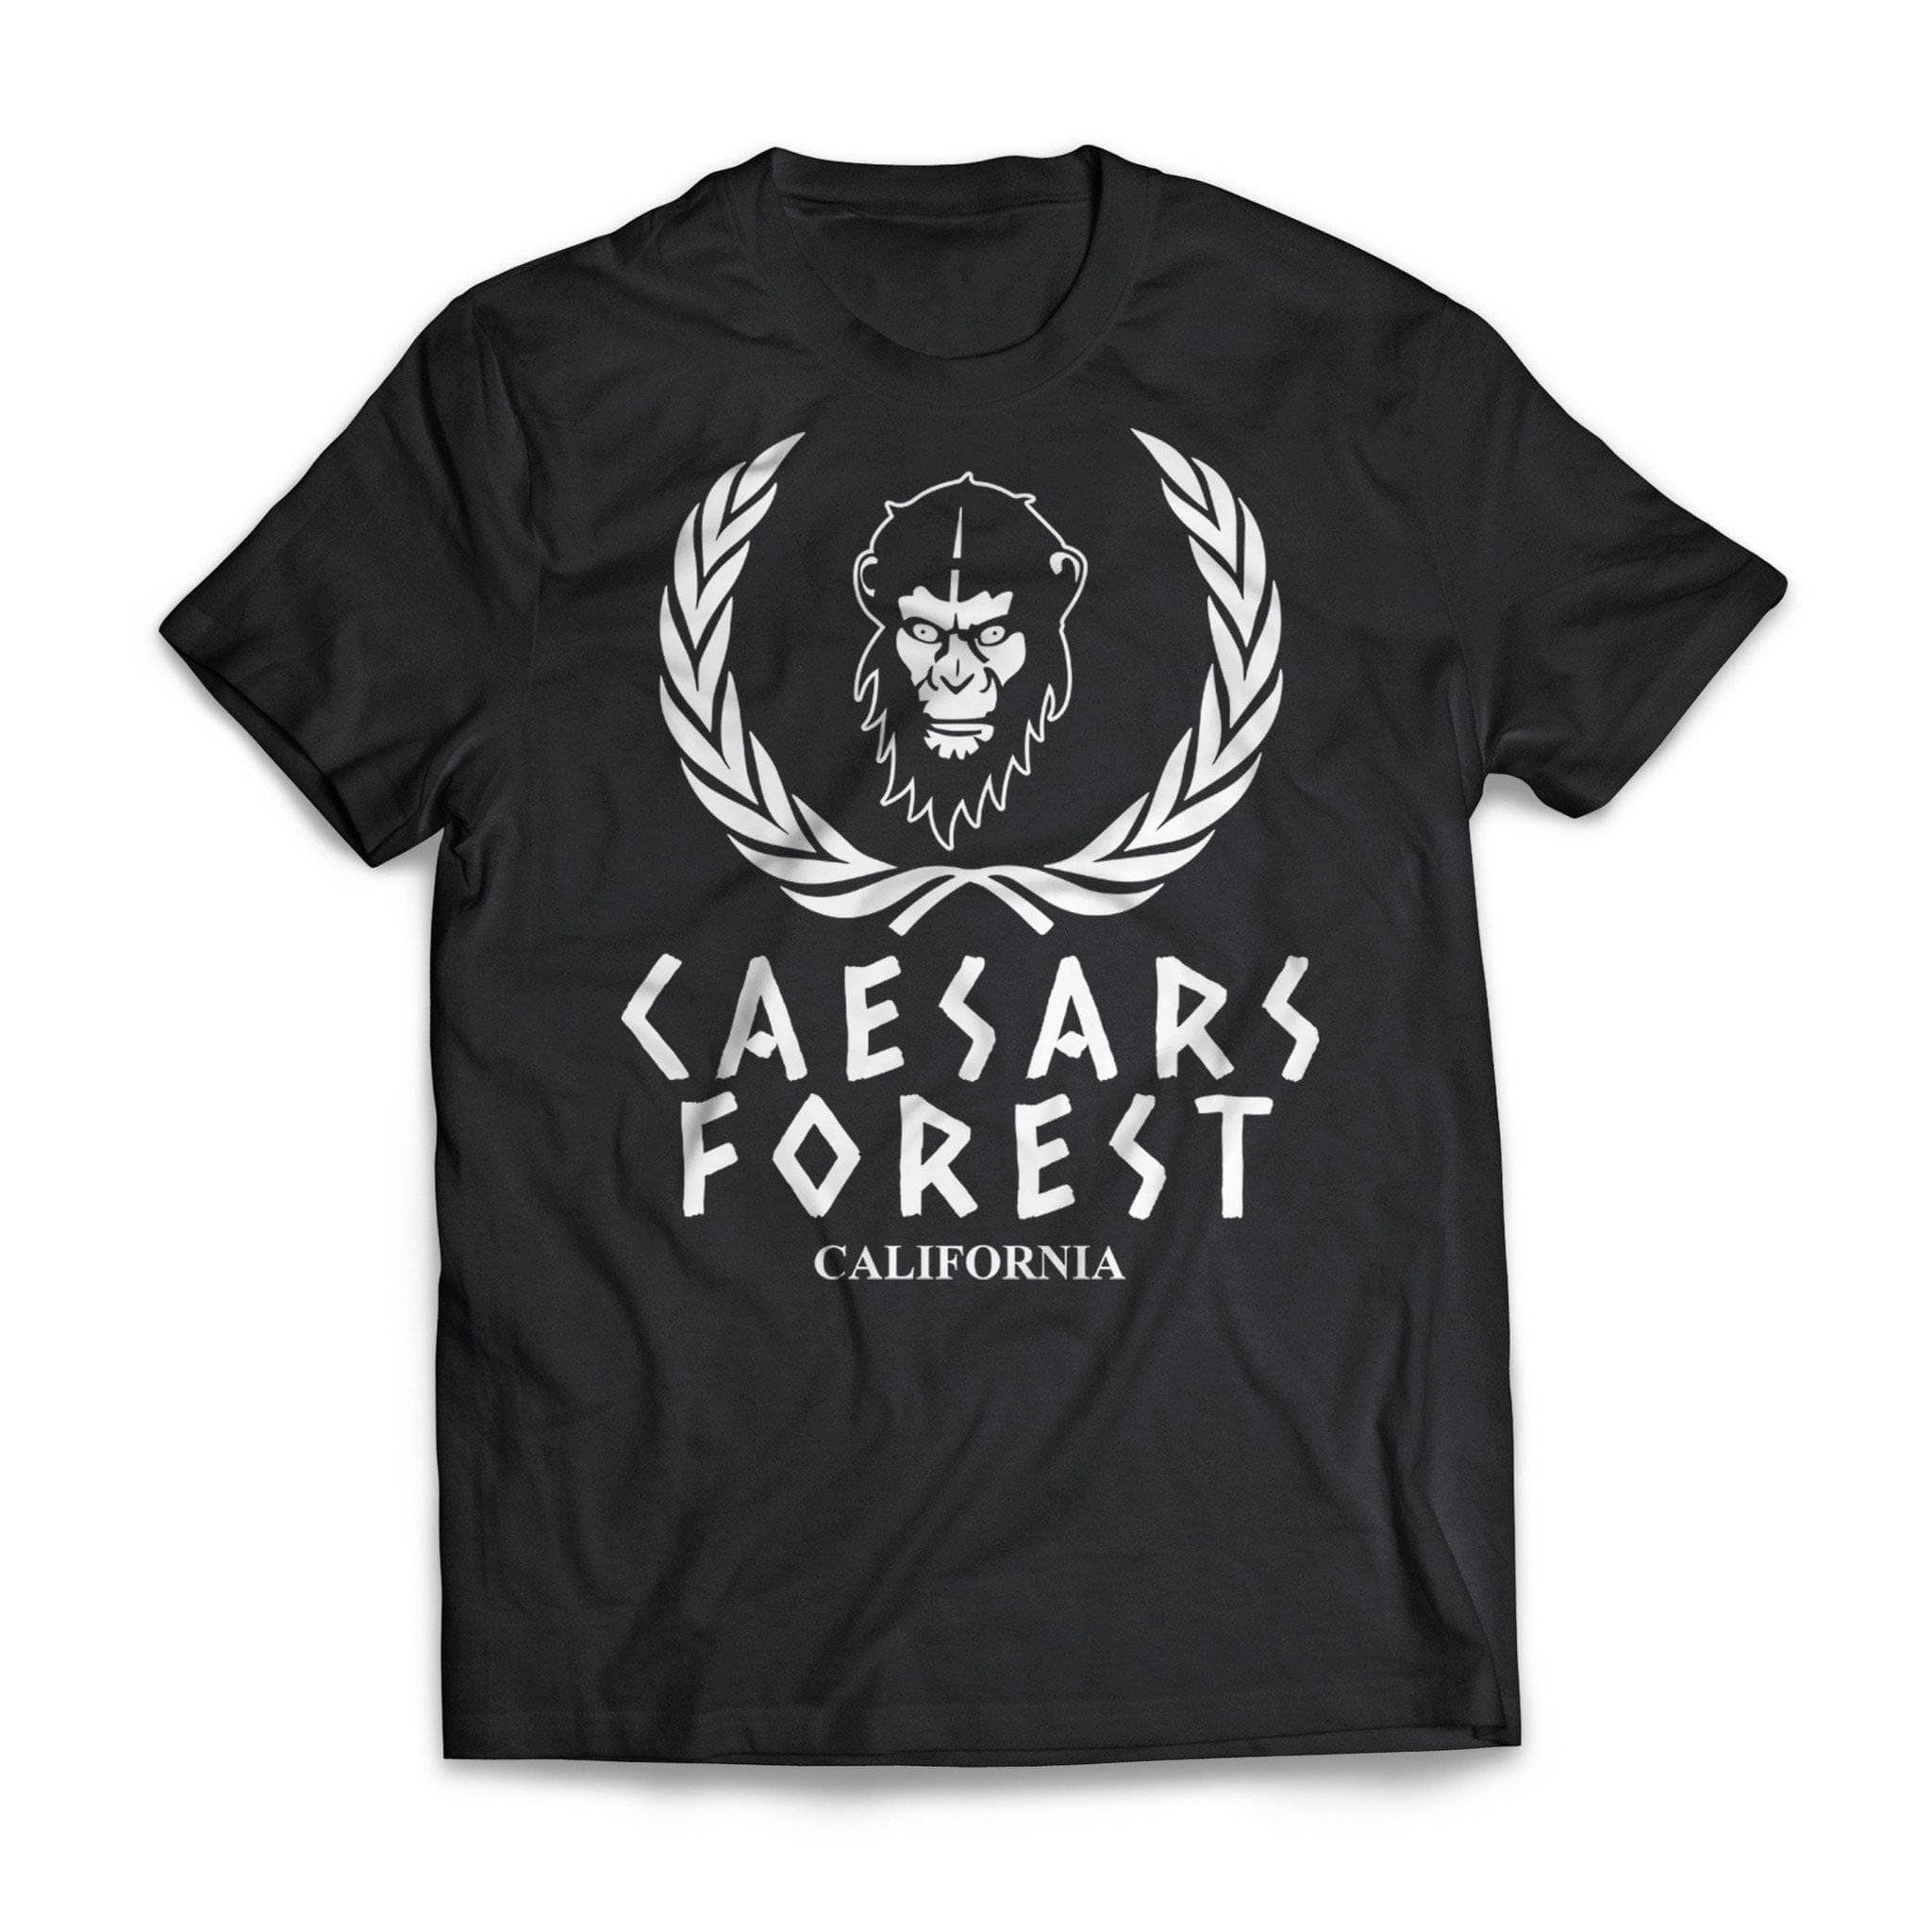 Ceasars Forest